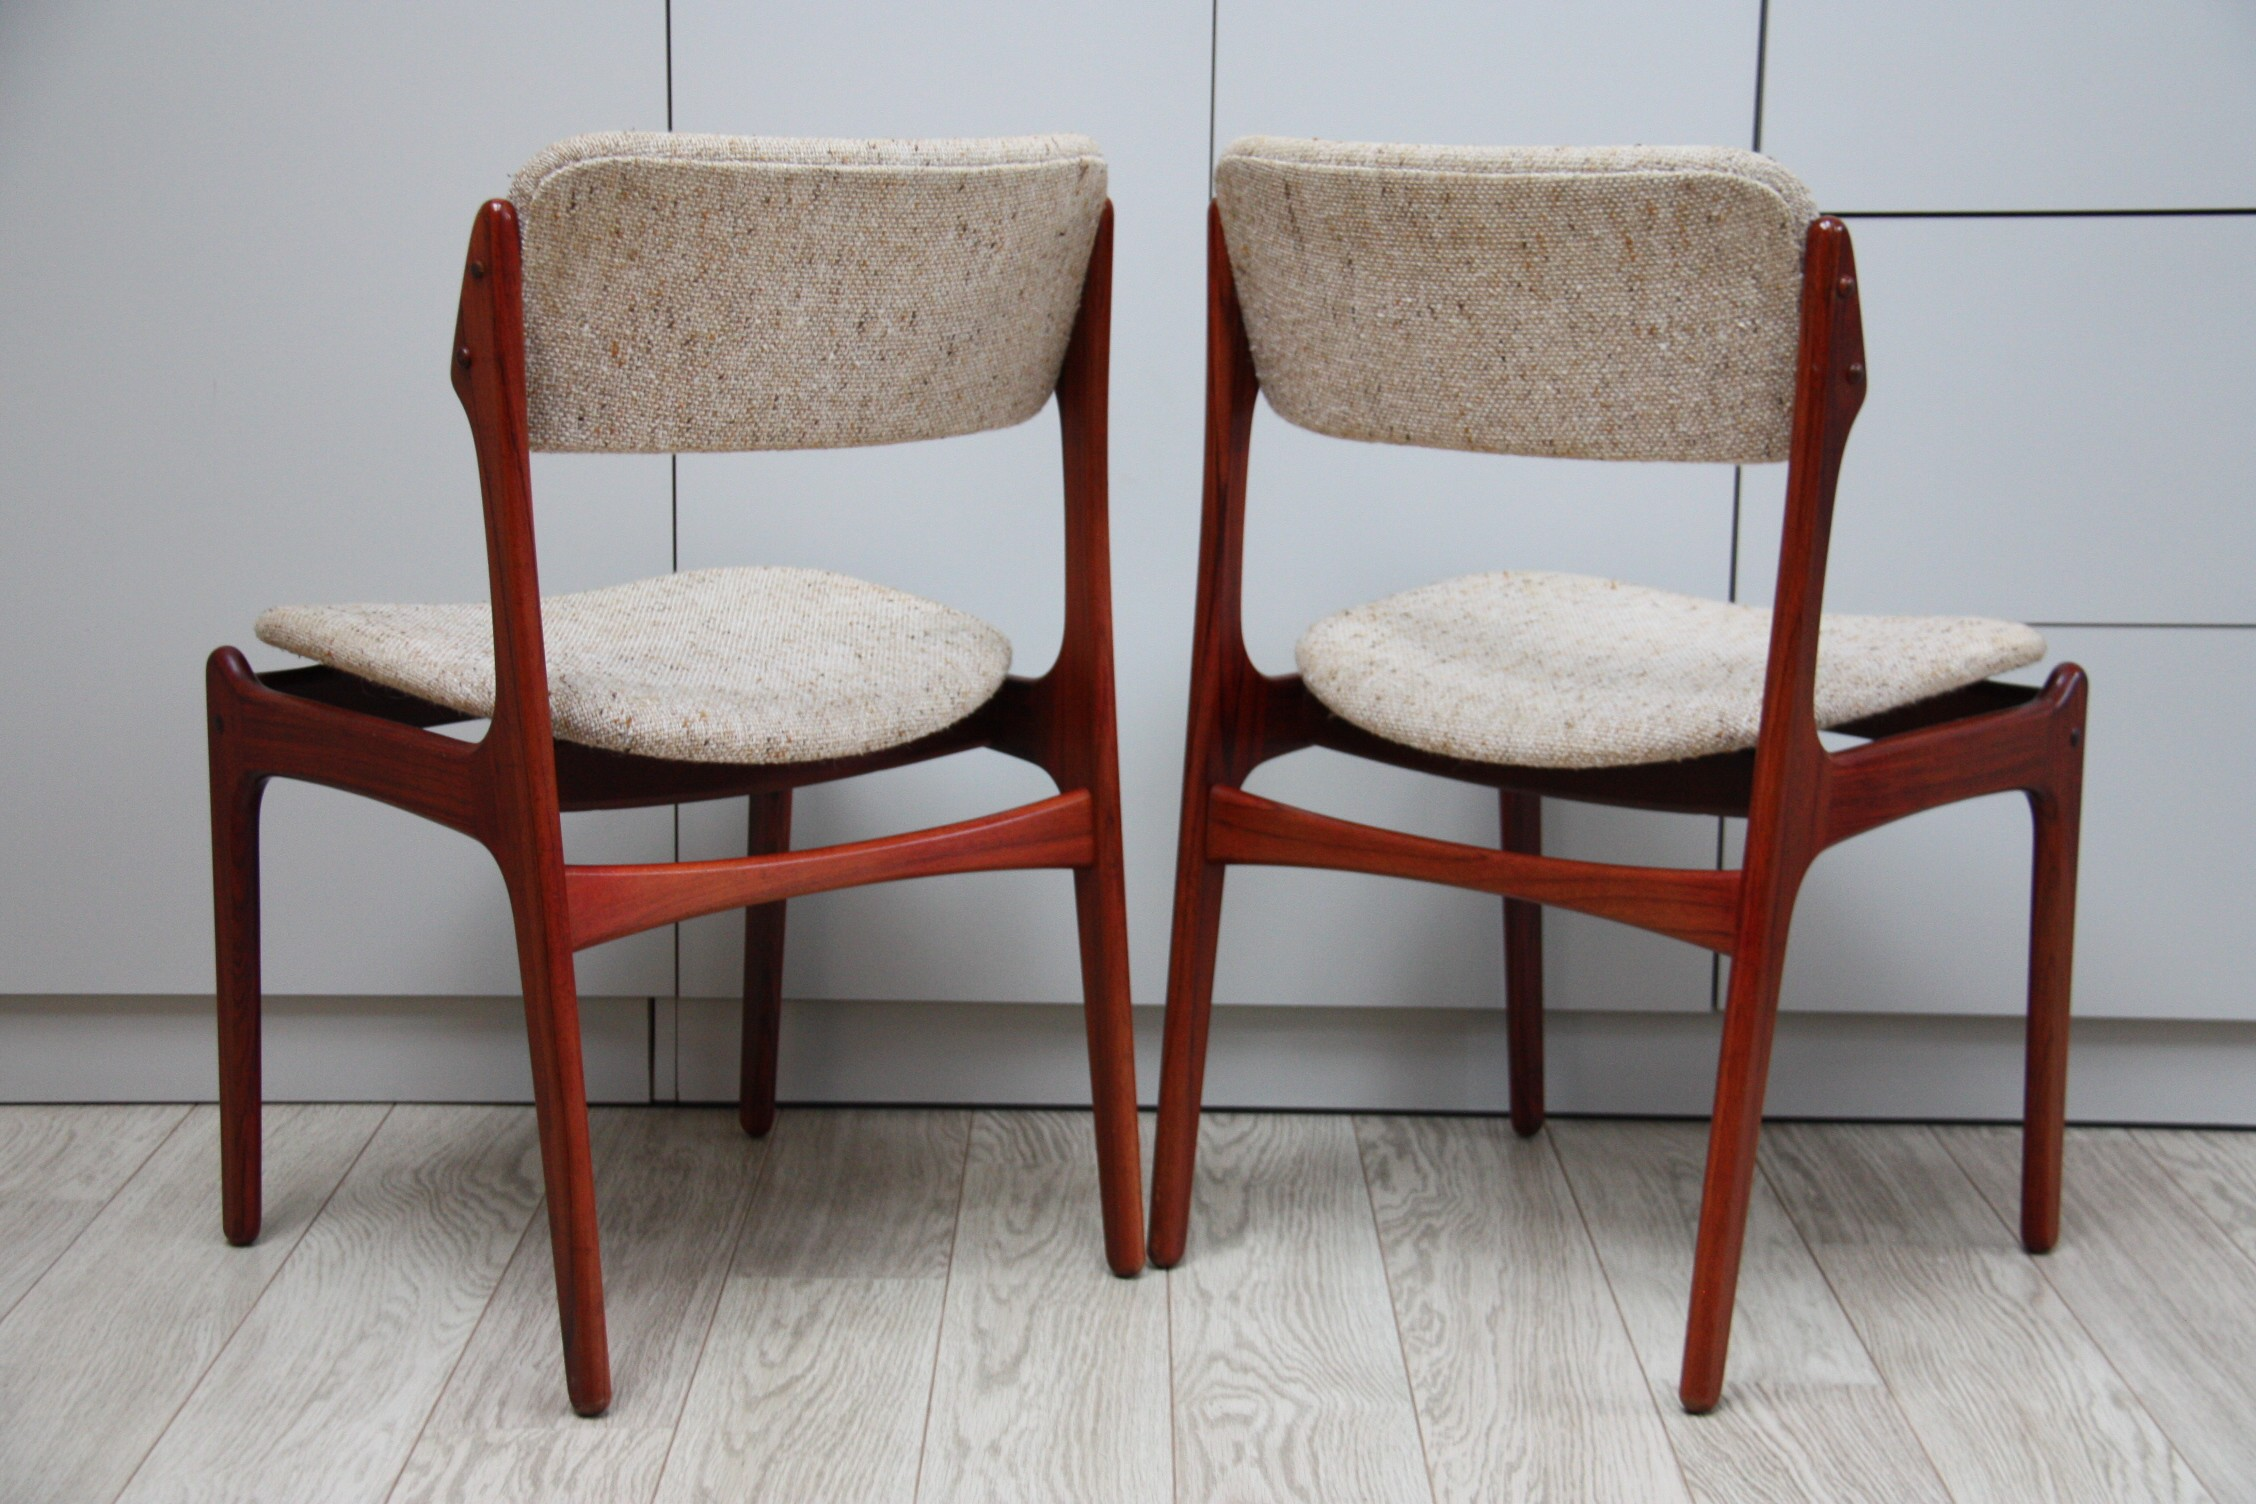 6 vintage dining chairs in rosewood Model 49 designed by Erik